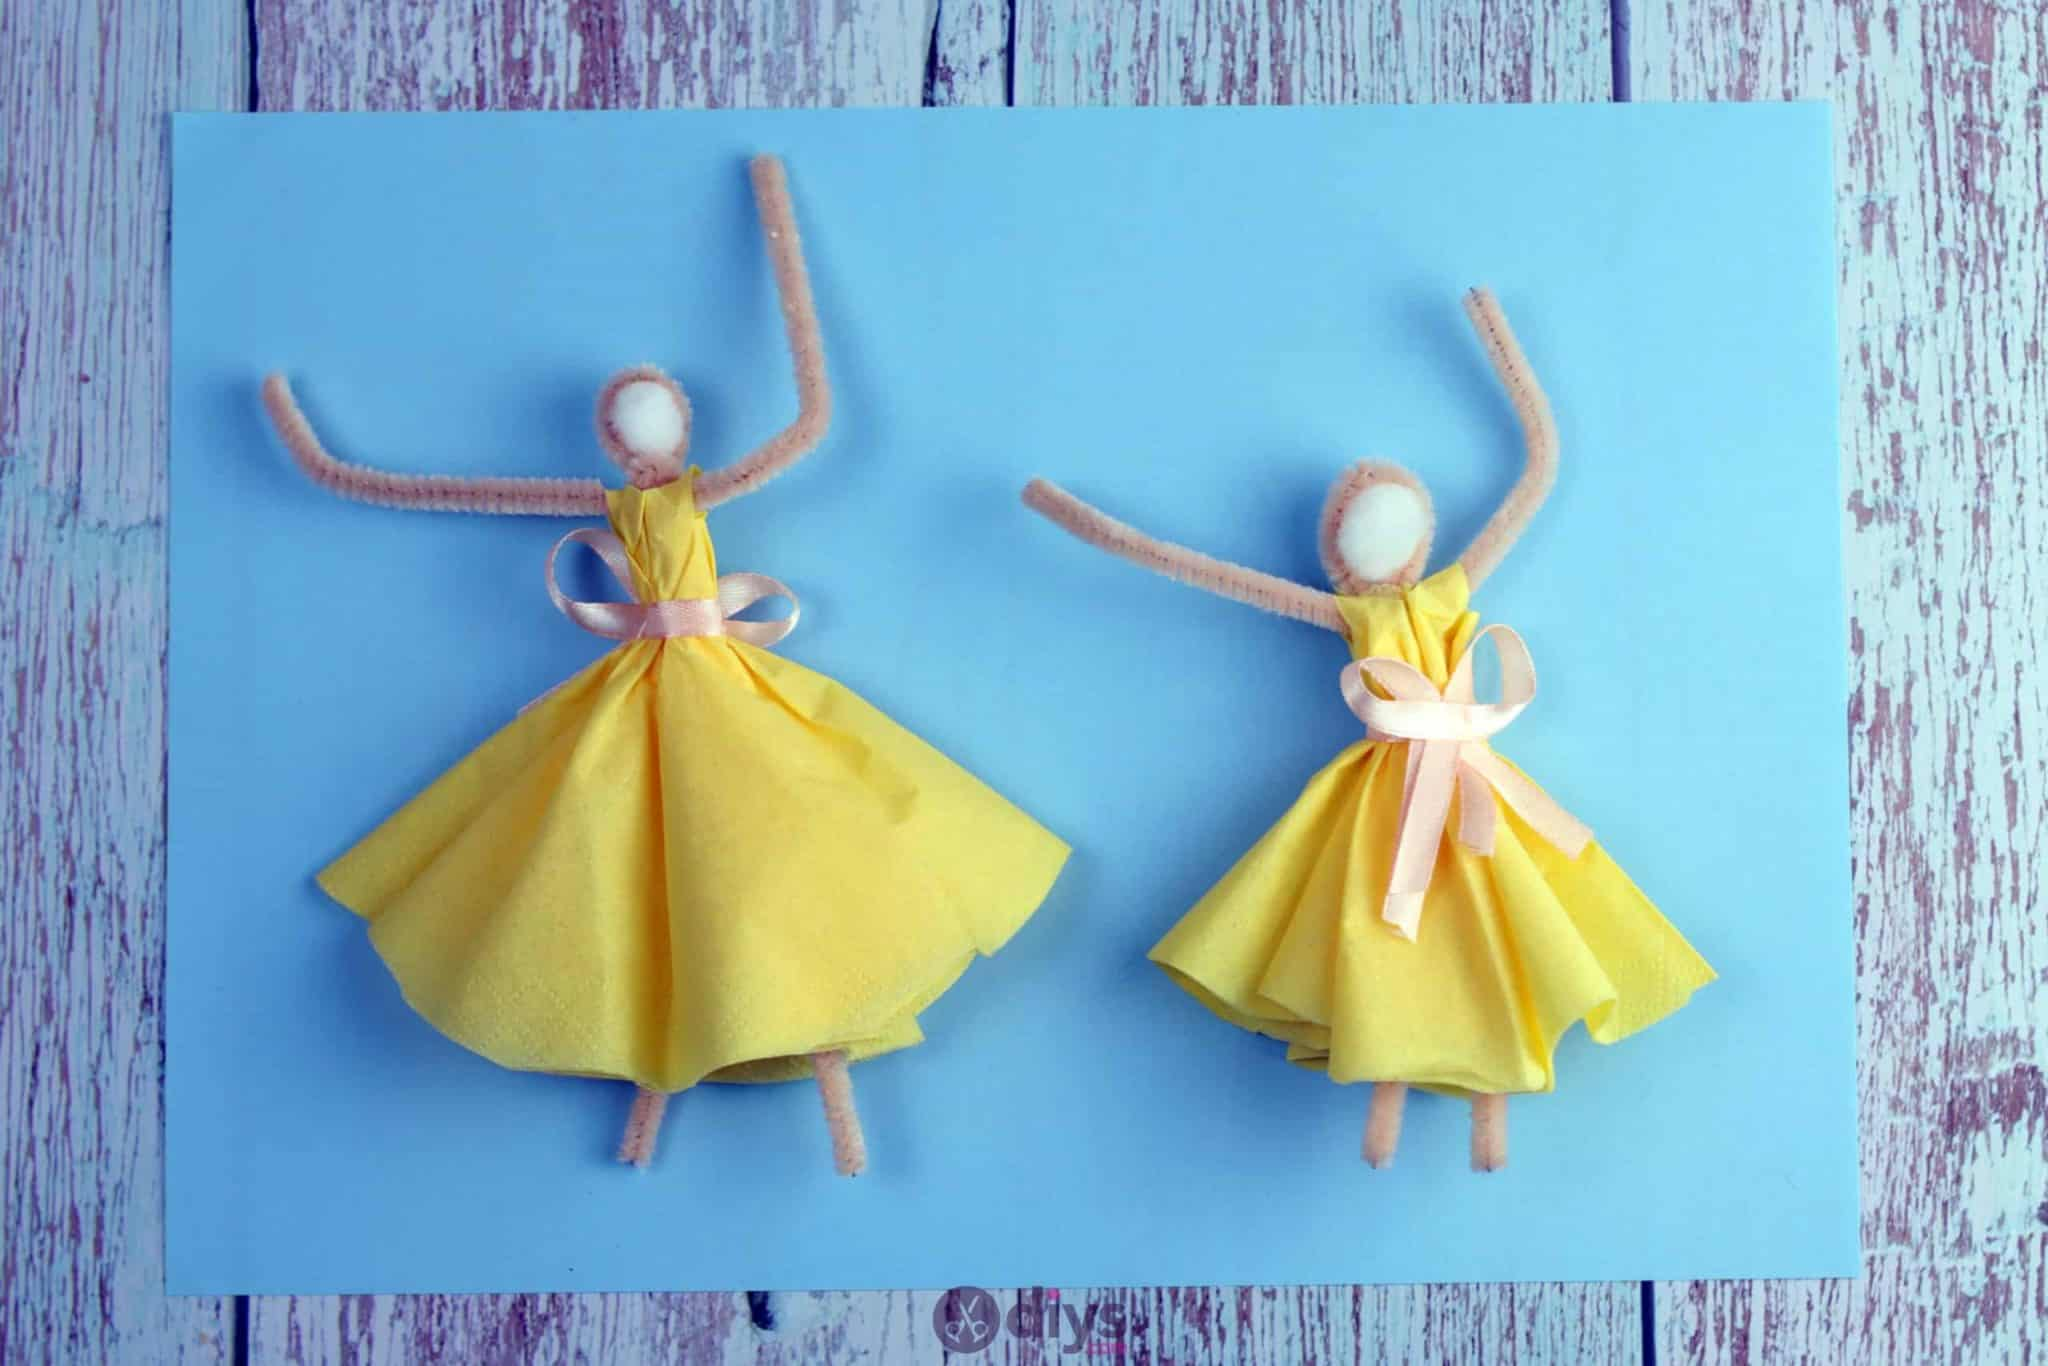 How to make a dancing napkin puppet4